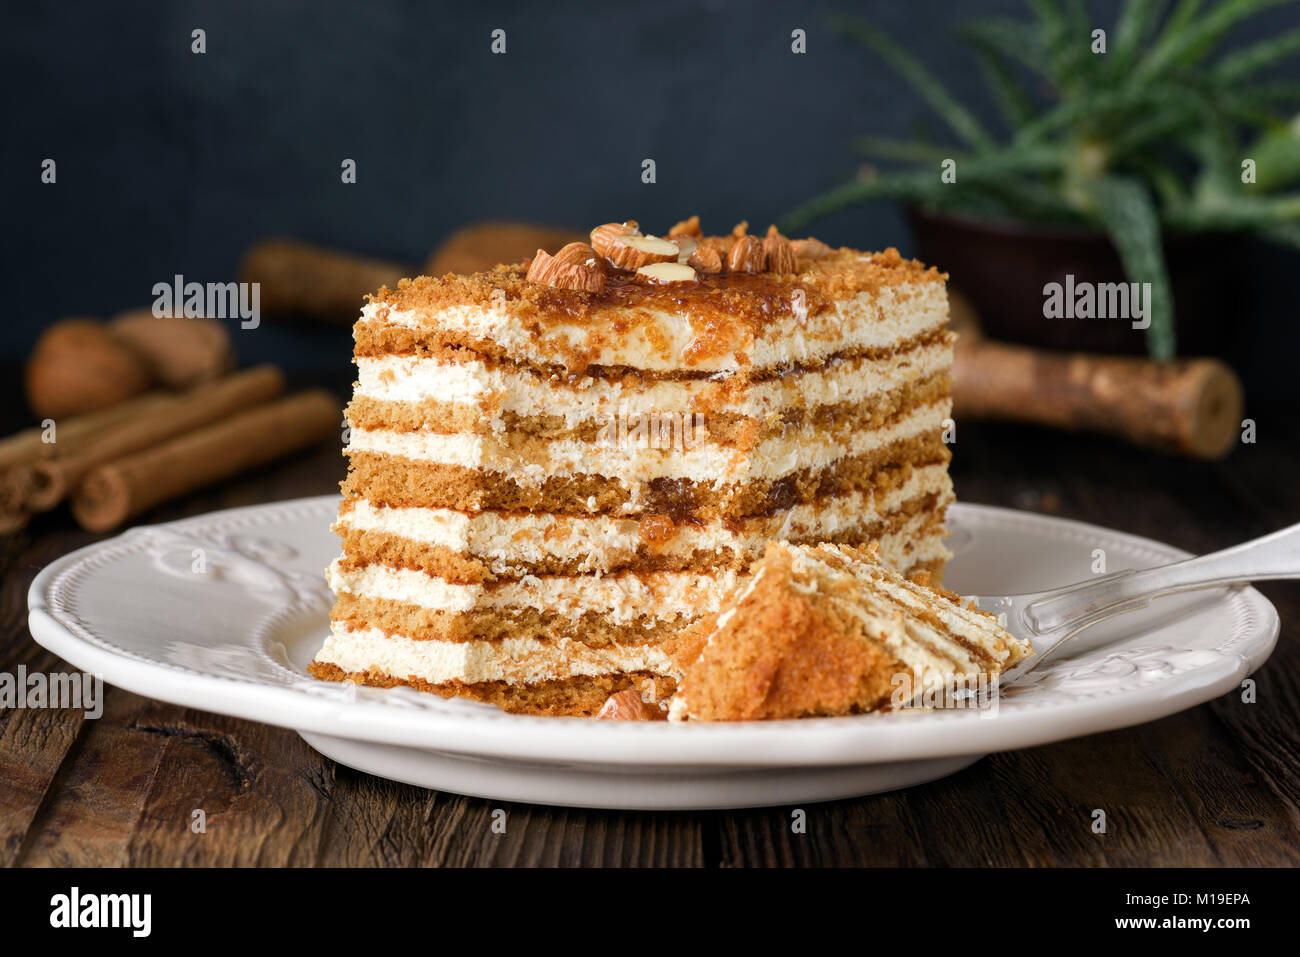 Honey cake with almonds on white plate. Russian cake Medovik - Stock Image